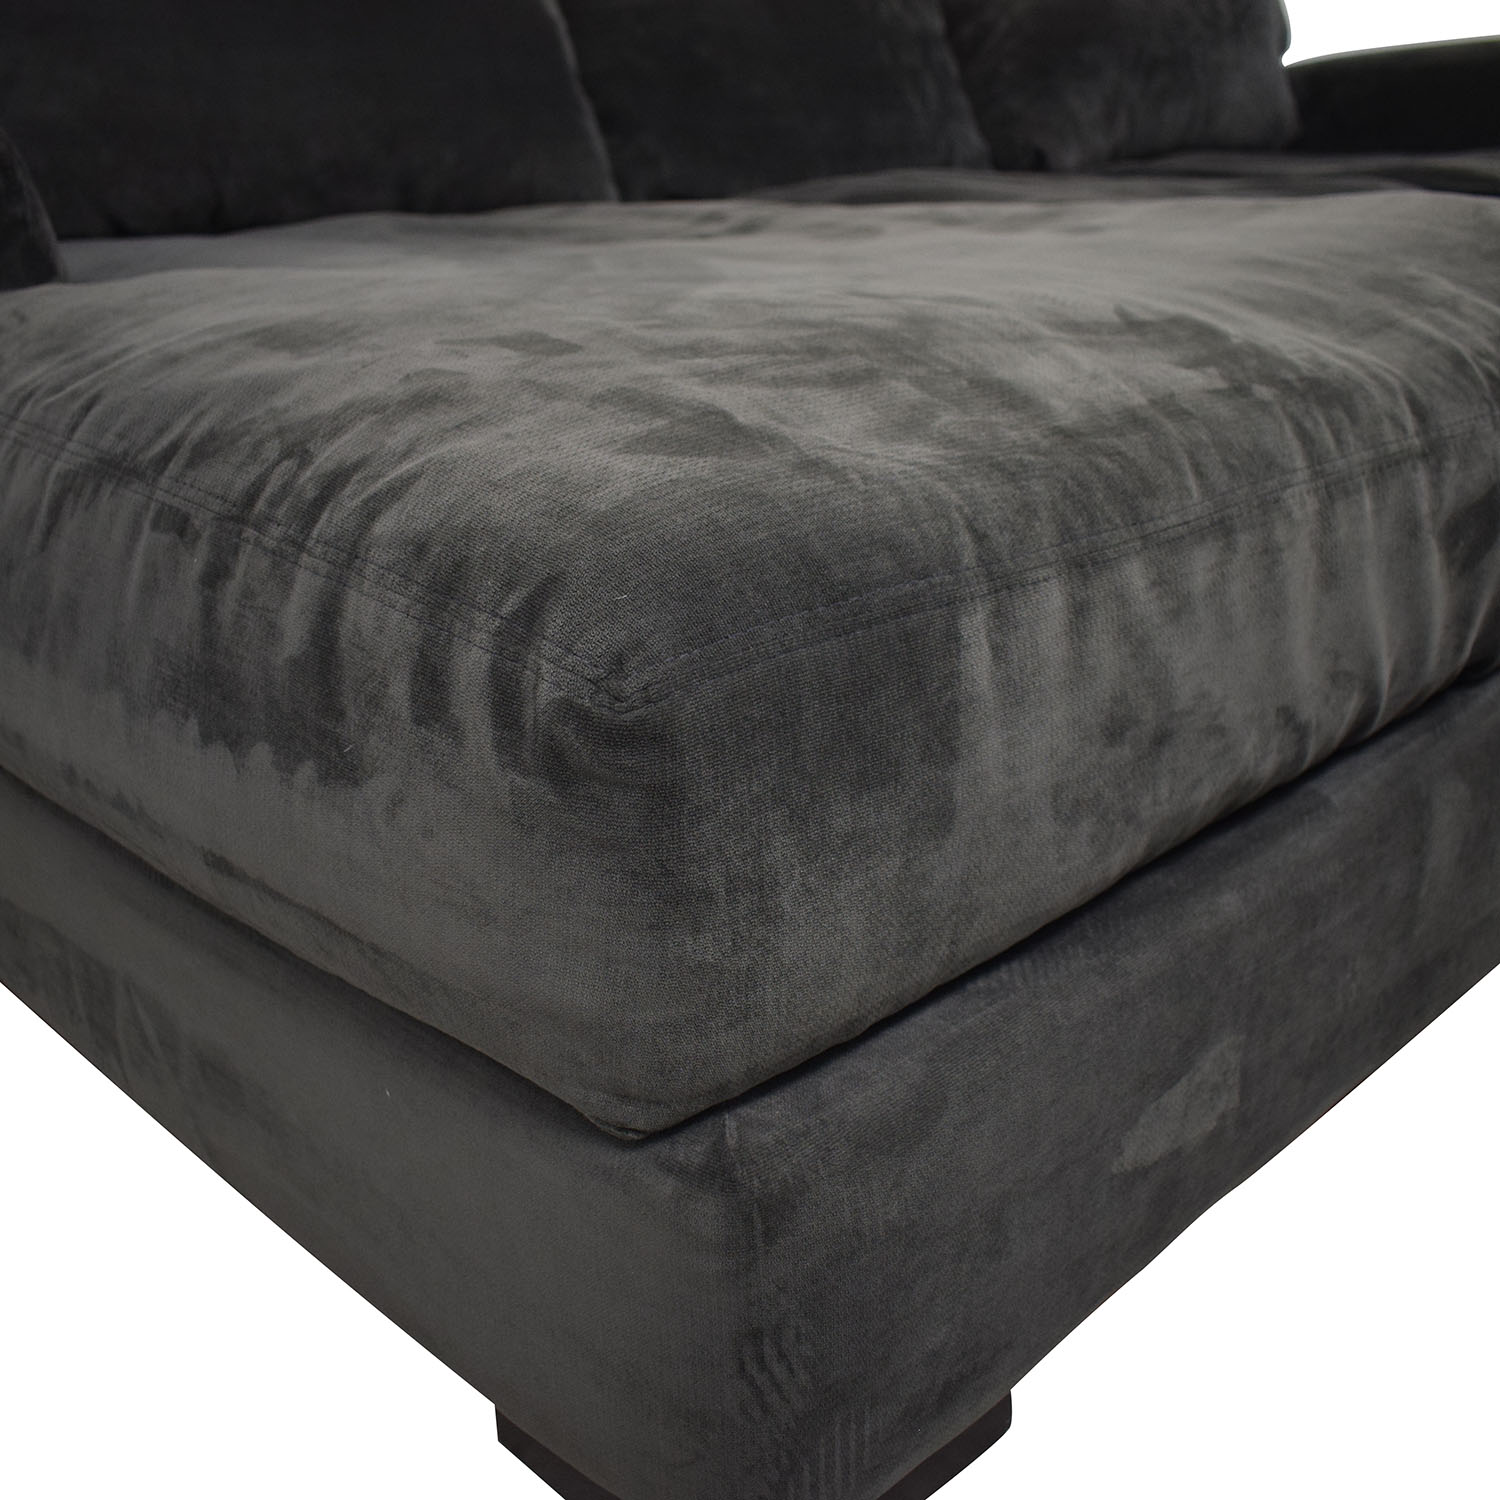 Z Gallerie Z Gallerie Stella Micah Sectional Sofa on sale